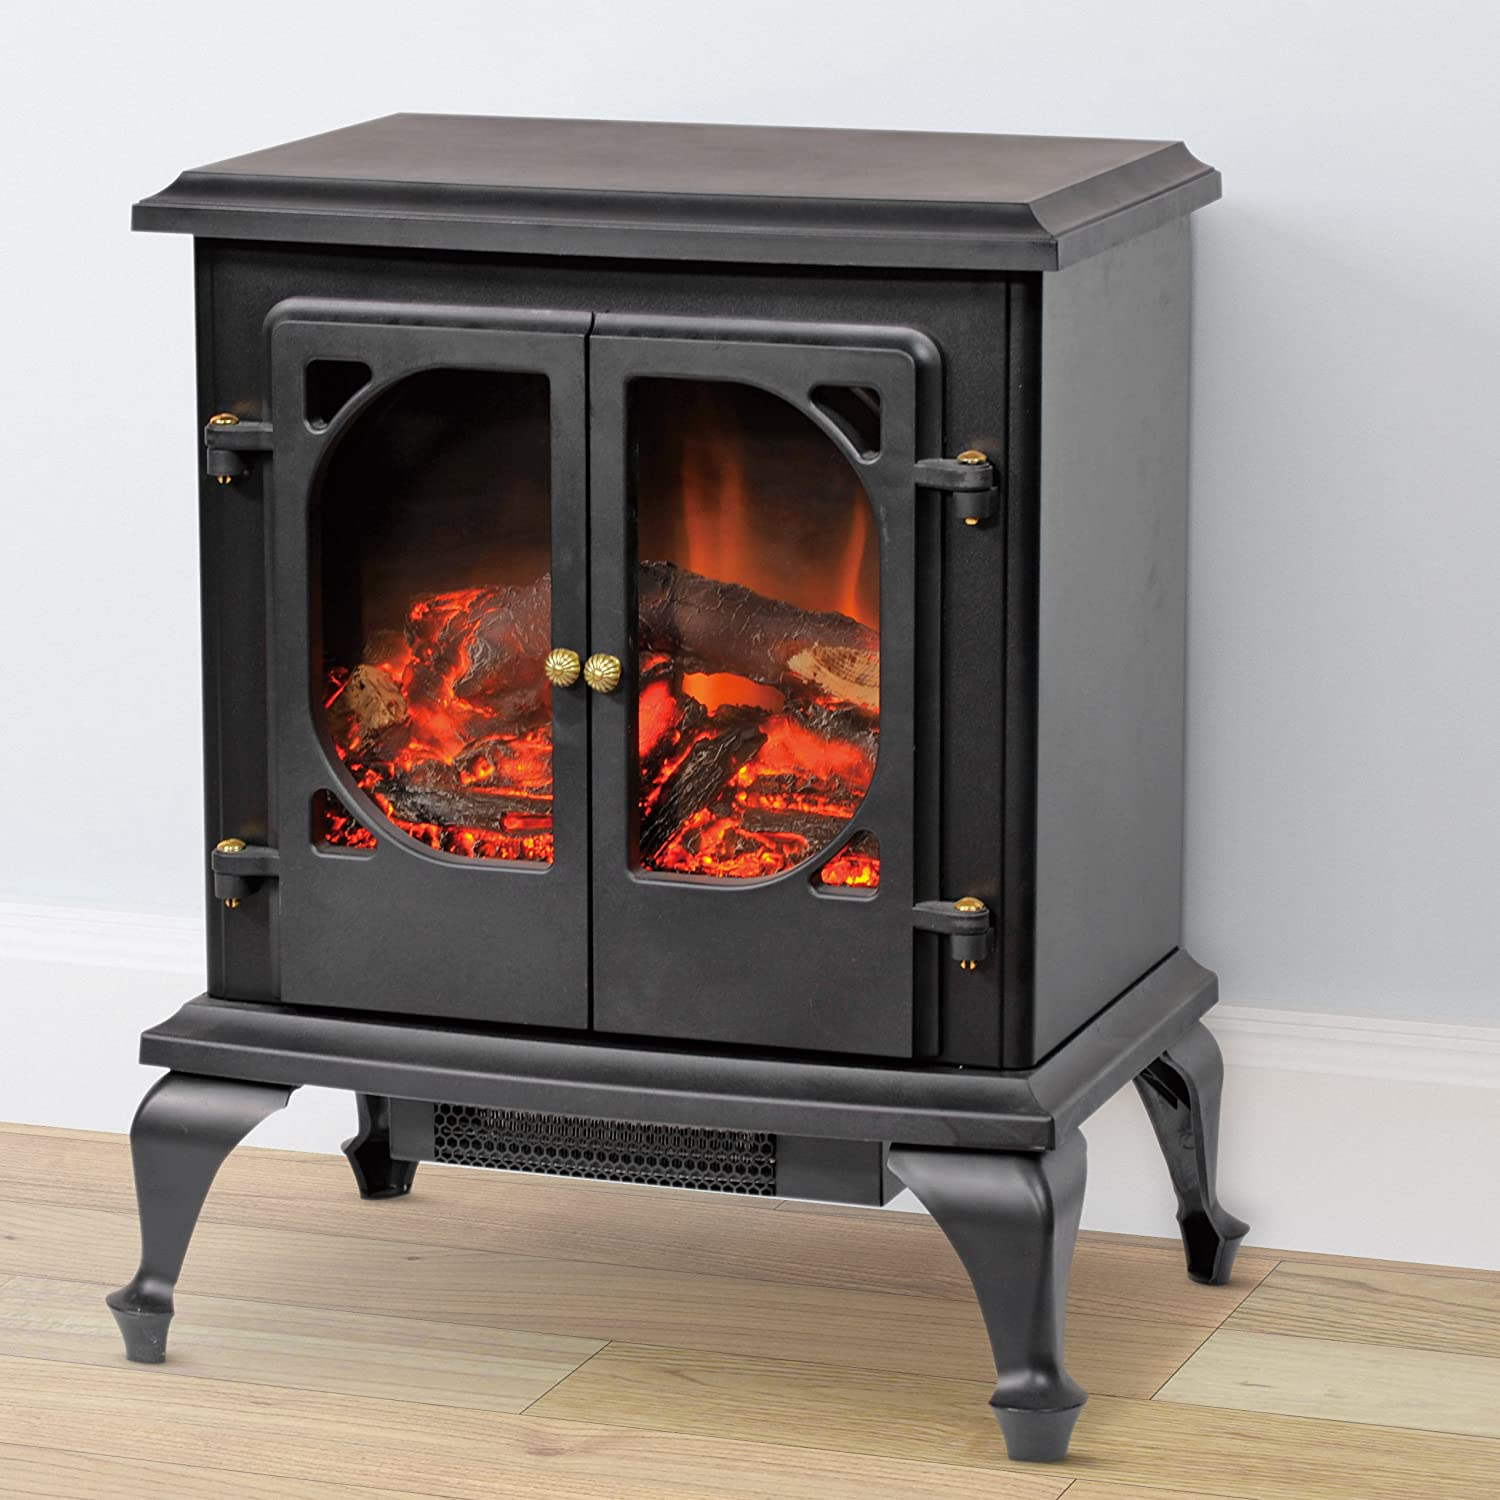 Amazon.com: CorLiving FPE-300-F Free Standing Electric Fireplace: Home & Kitchen